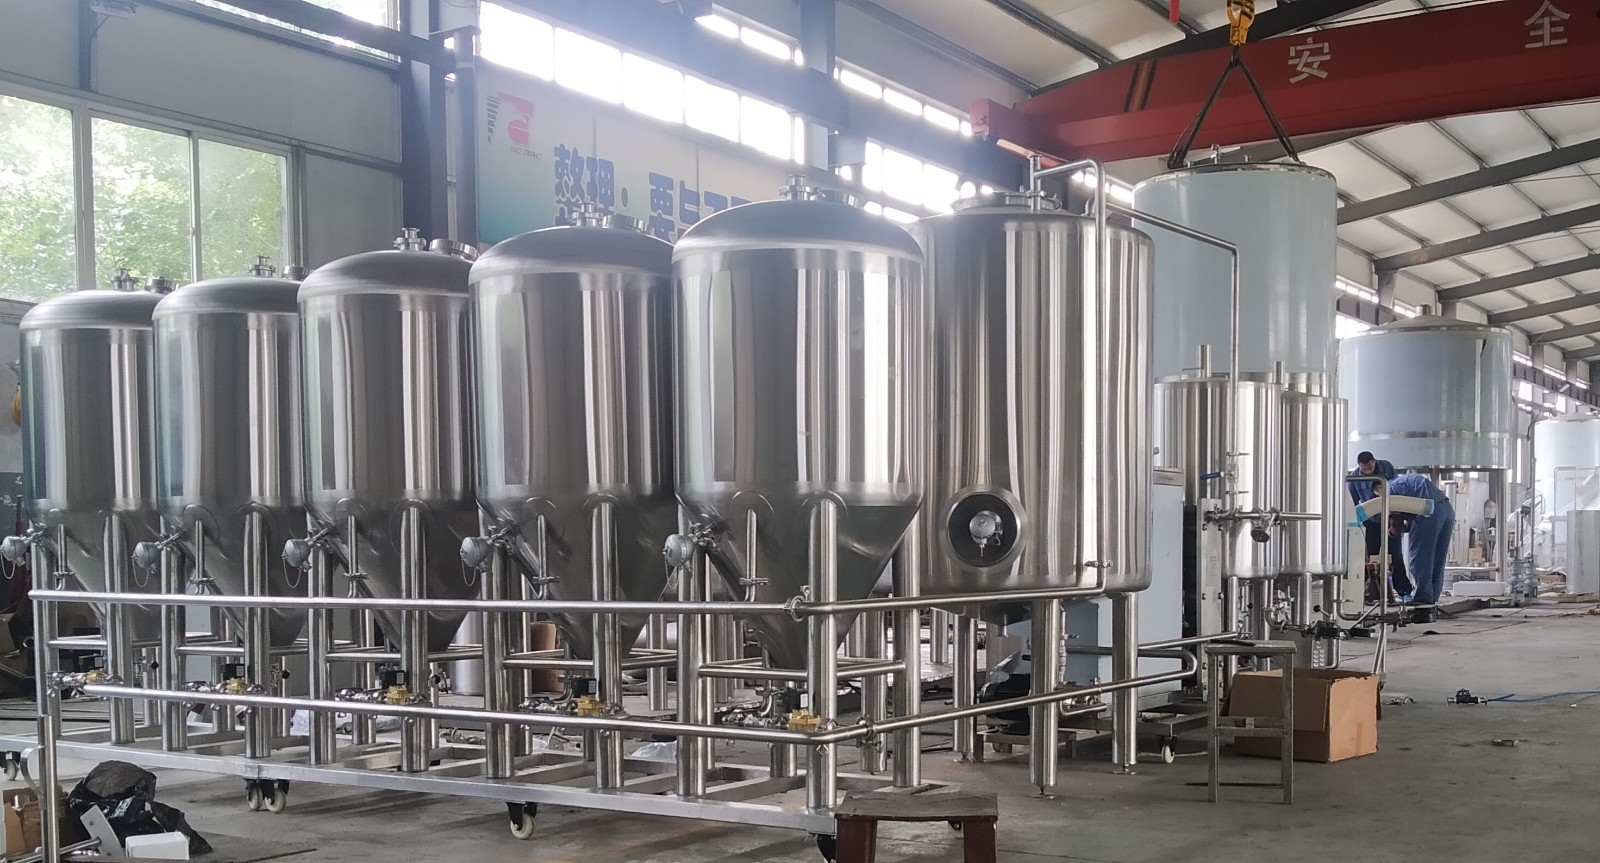 Australia professional craft beer brewing equipment of  stainless steel from China factory supplier W1